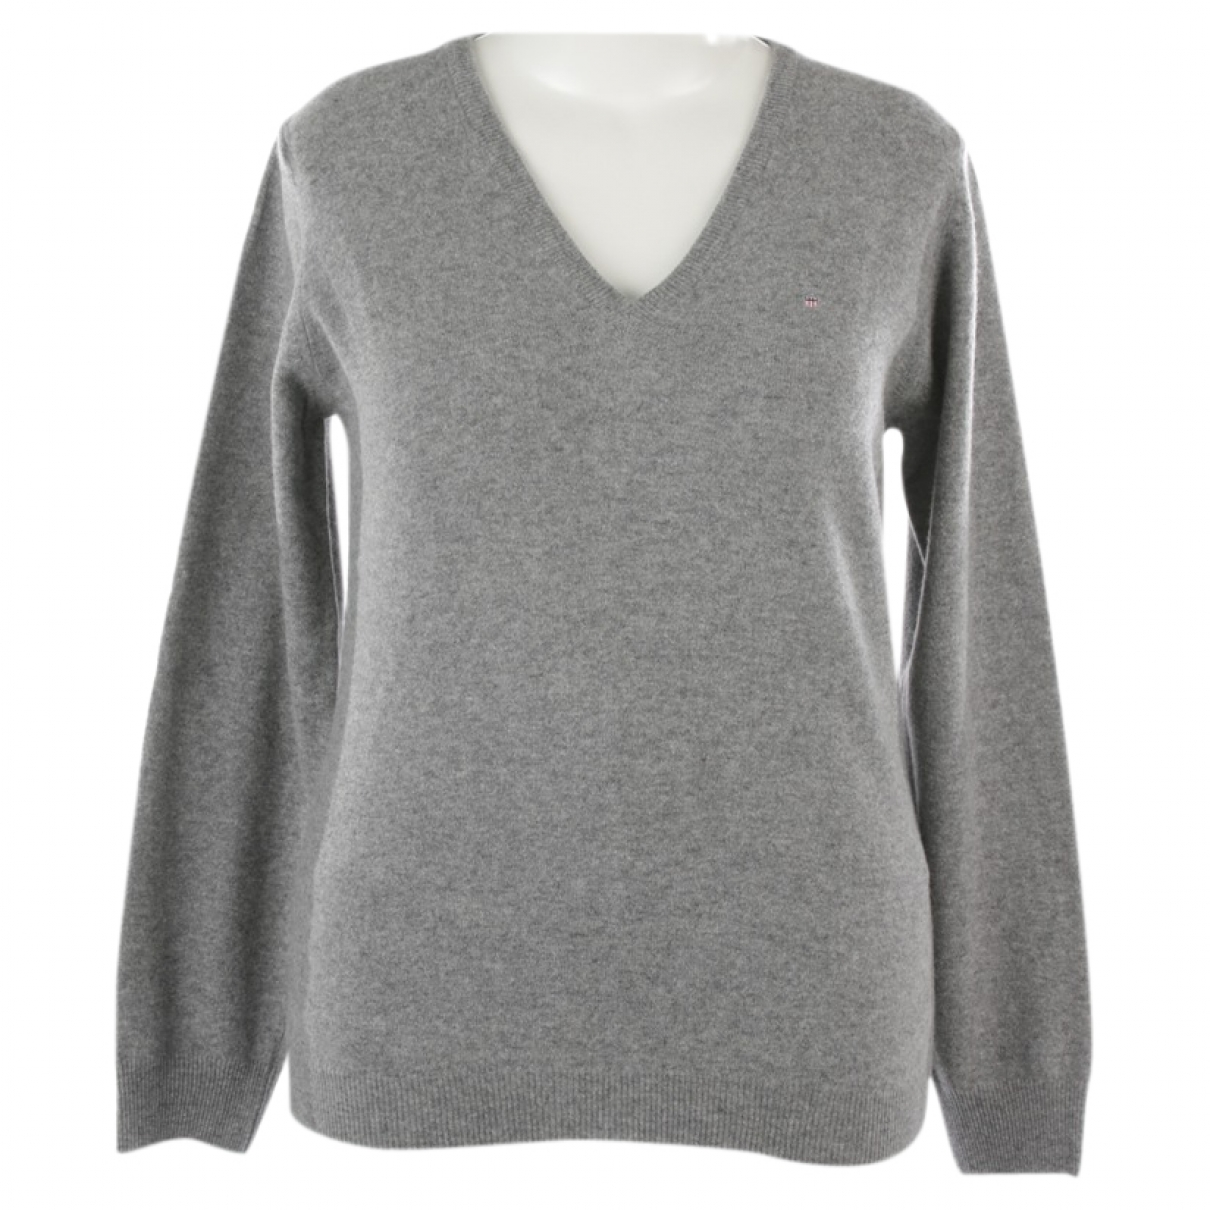 Gant Rugger \N Grey Wool Knitwear for Women XXXL International